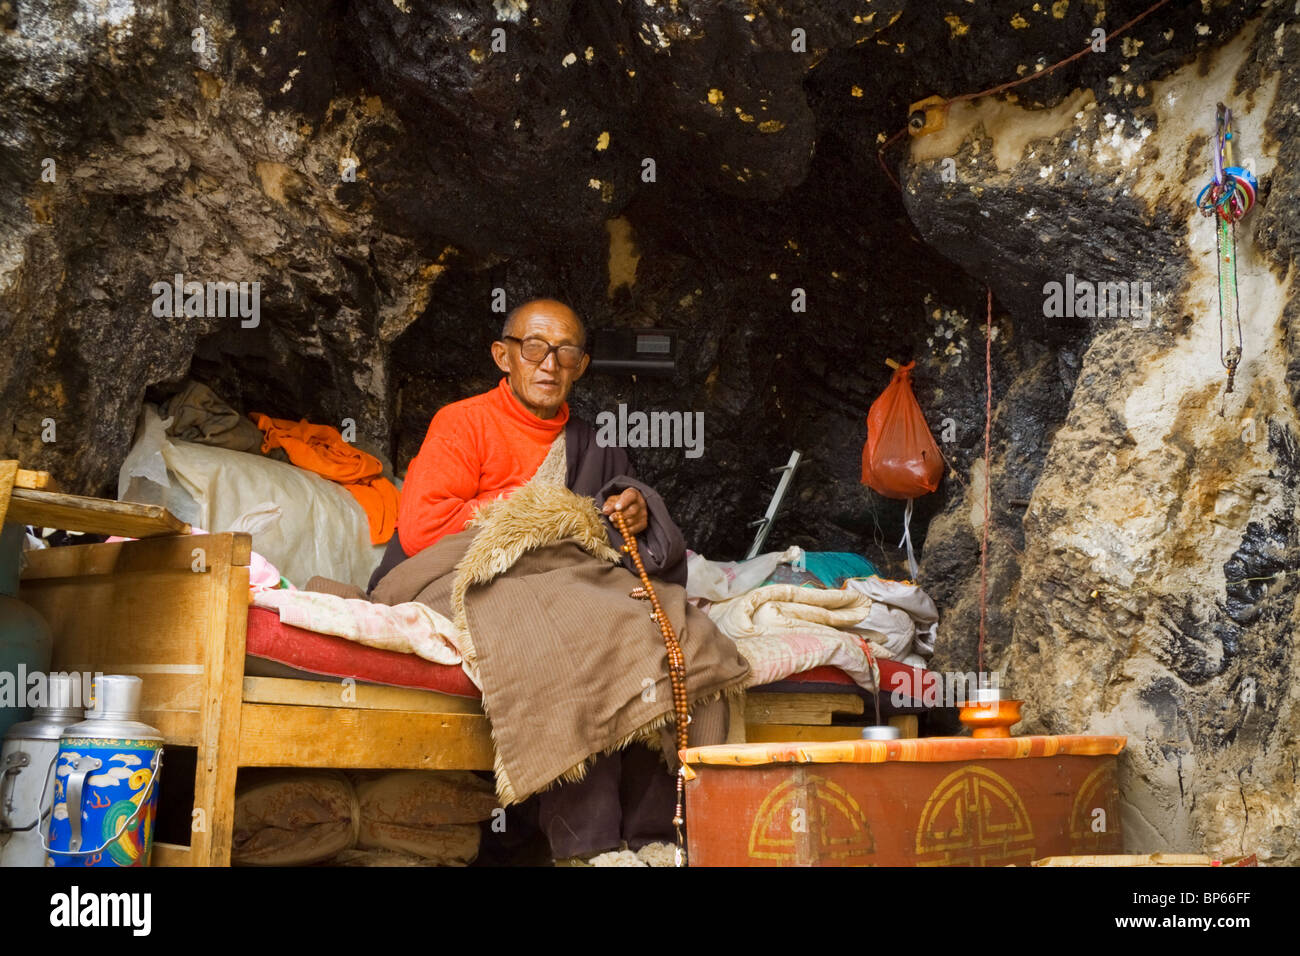 A religious hermit in his cave dwelling at Lake Namsto in Tibet. - Stock Image